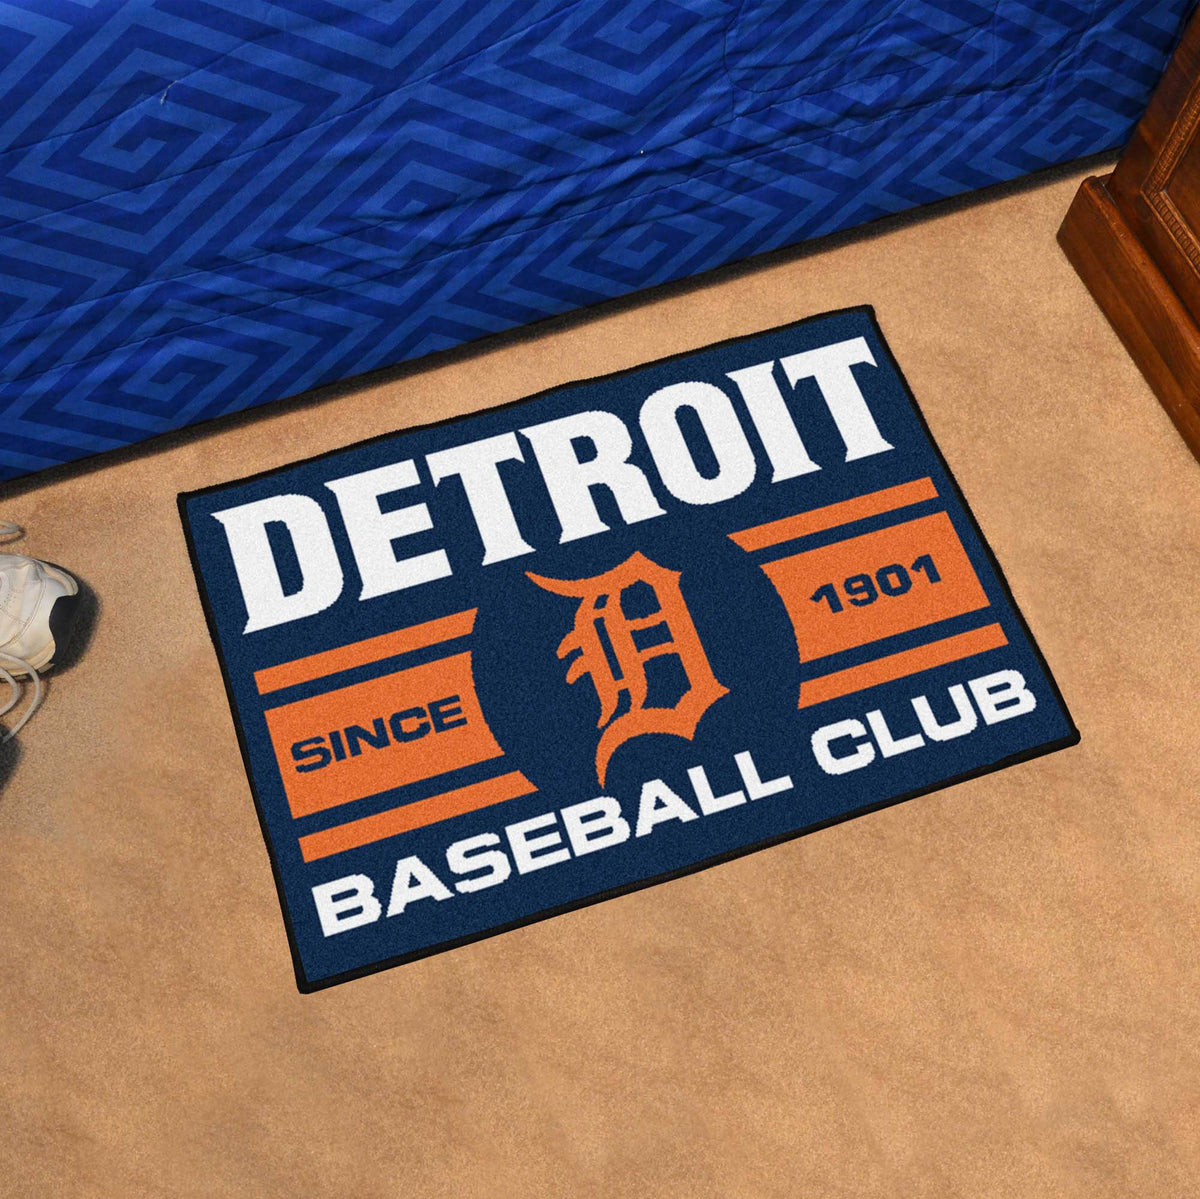 MLB - Uniform Starter Mat MLB Mats, Rectangular Mats, Uniform Starter Mat, MLB, Home Fan Mats Detroit Tigers